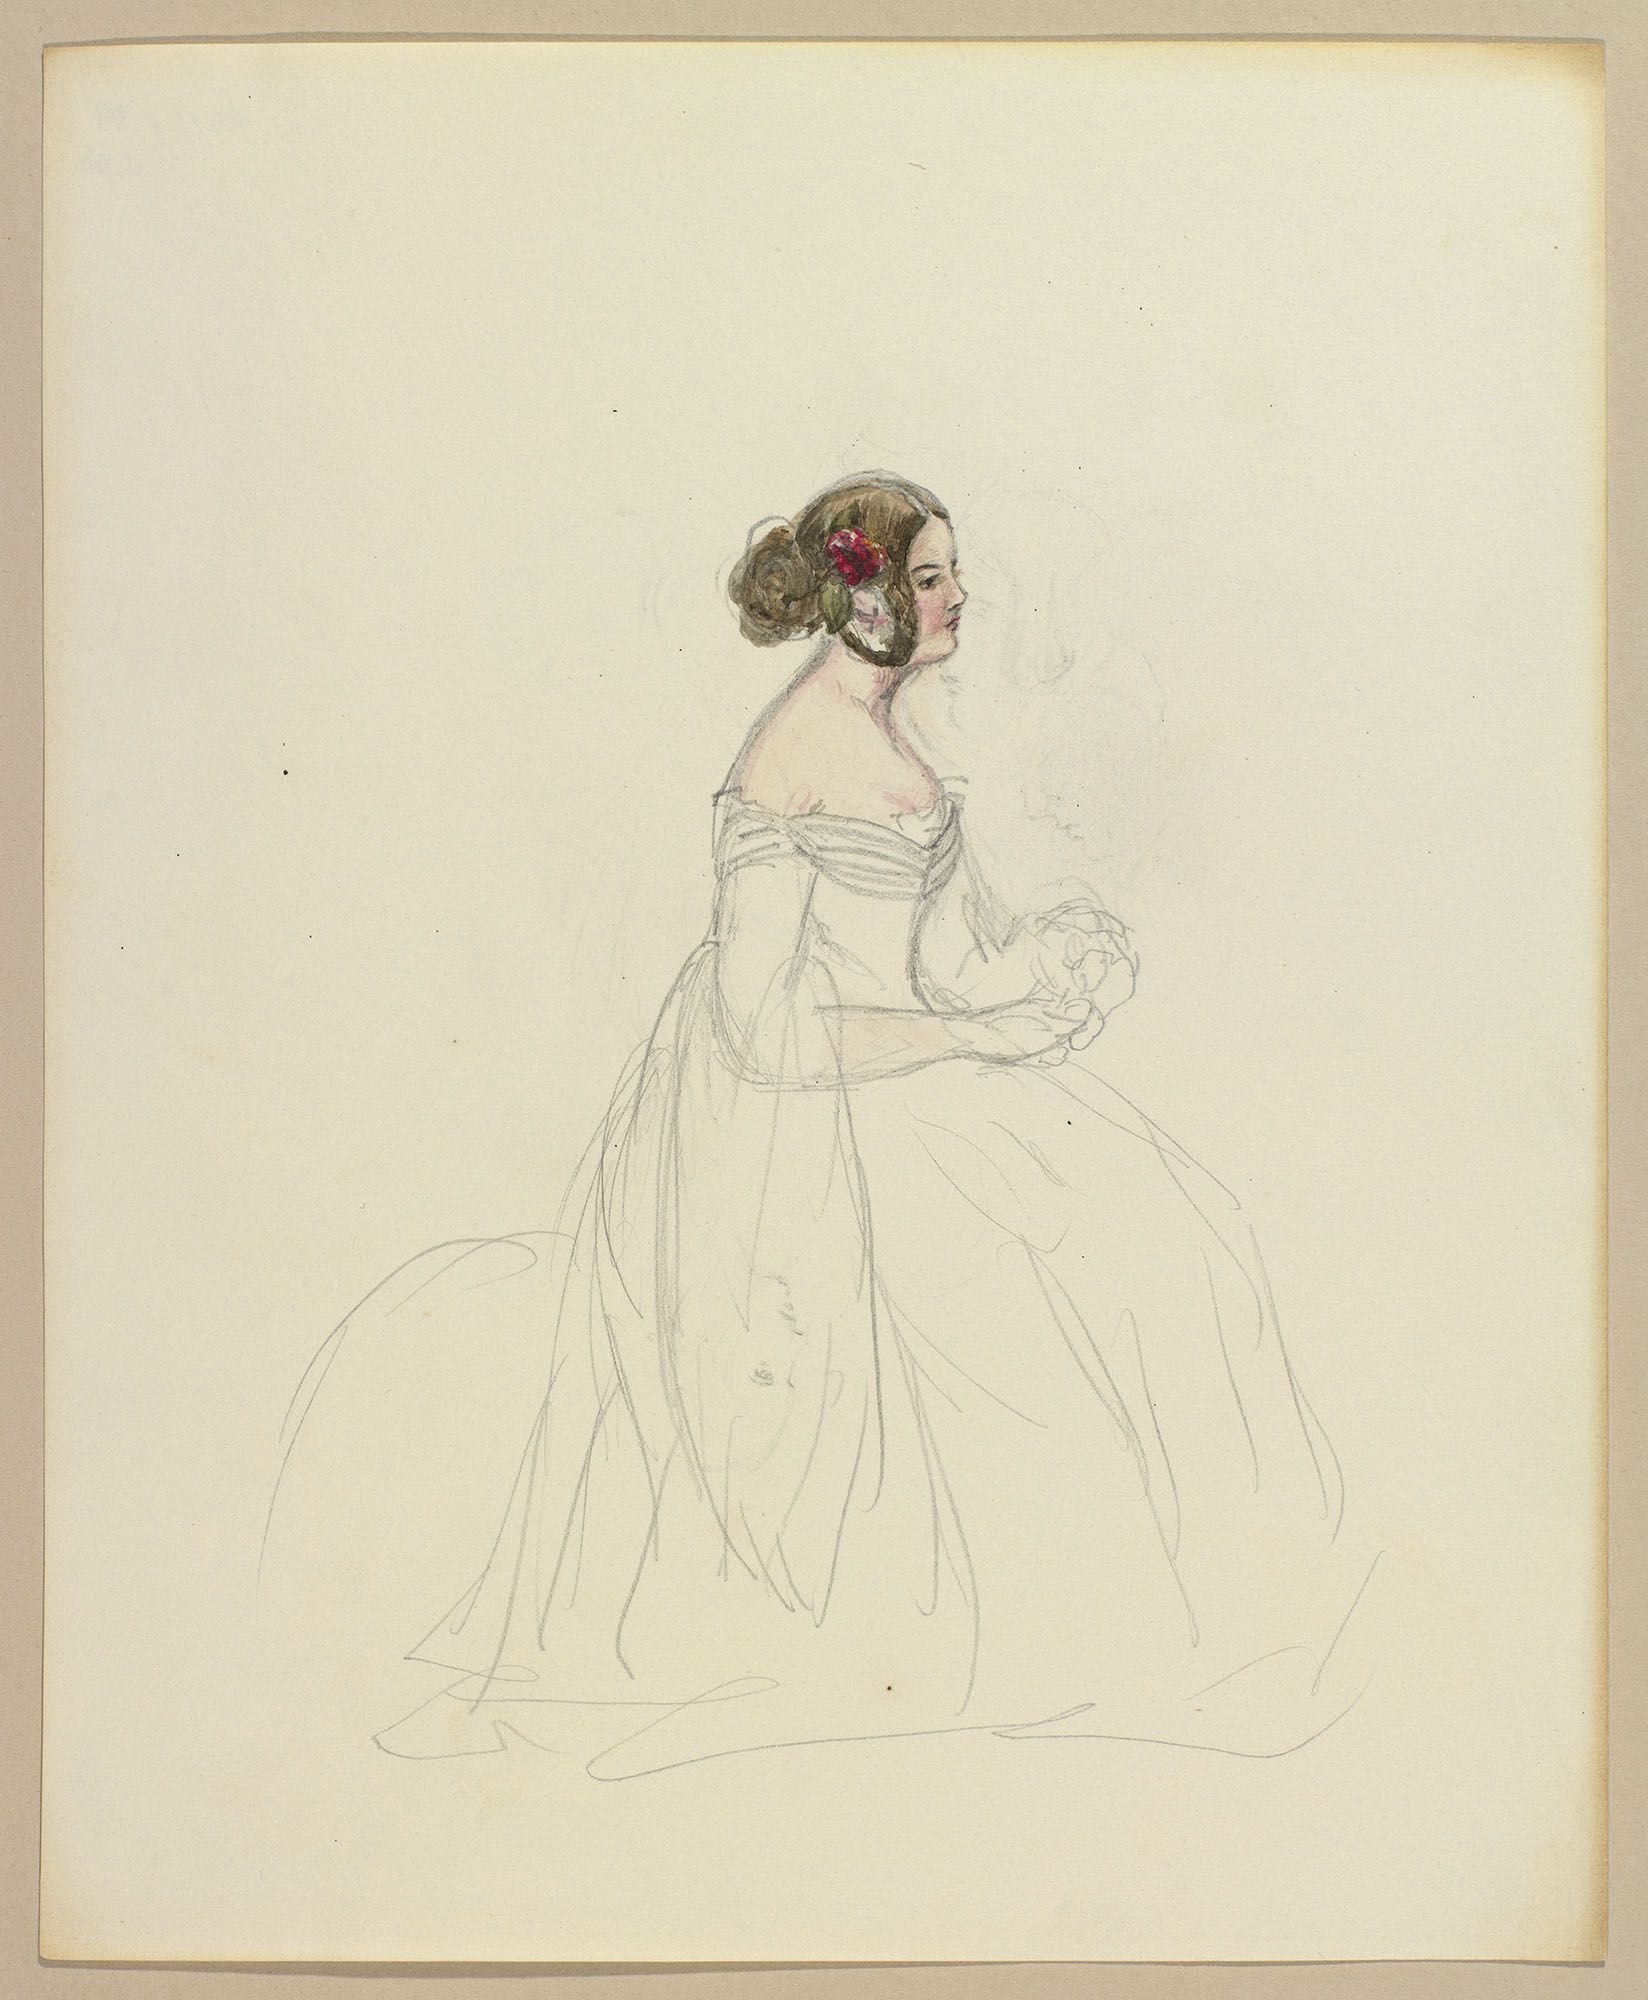 Princess queen victorias folder of sketches 1836 royal collection trust